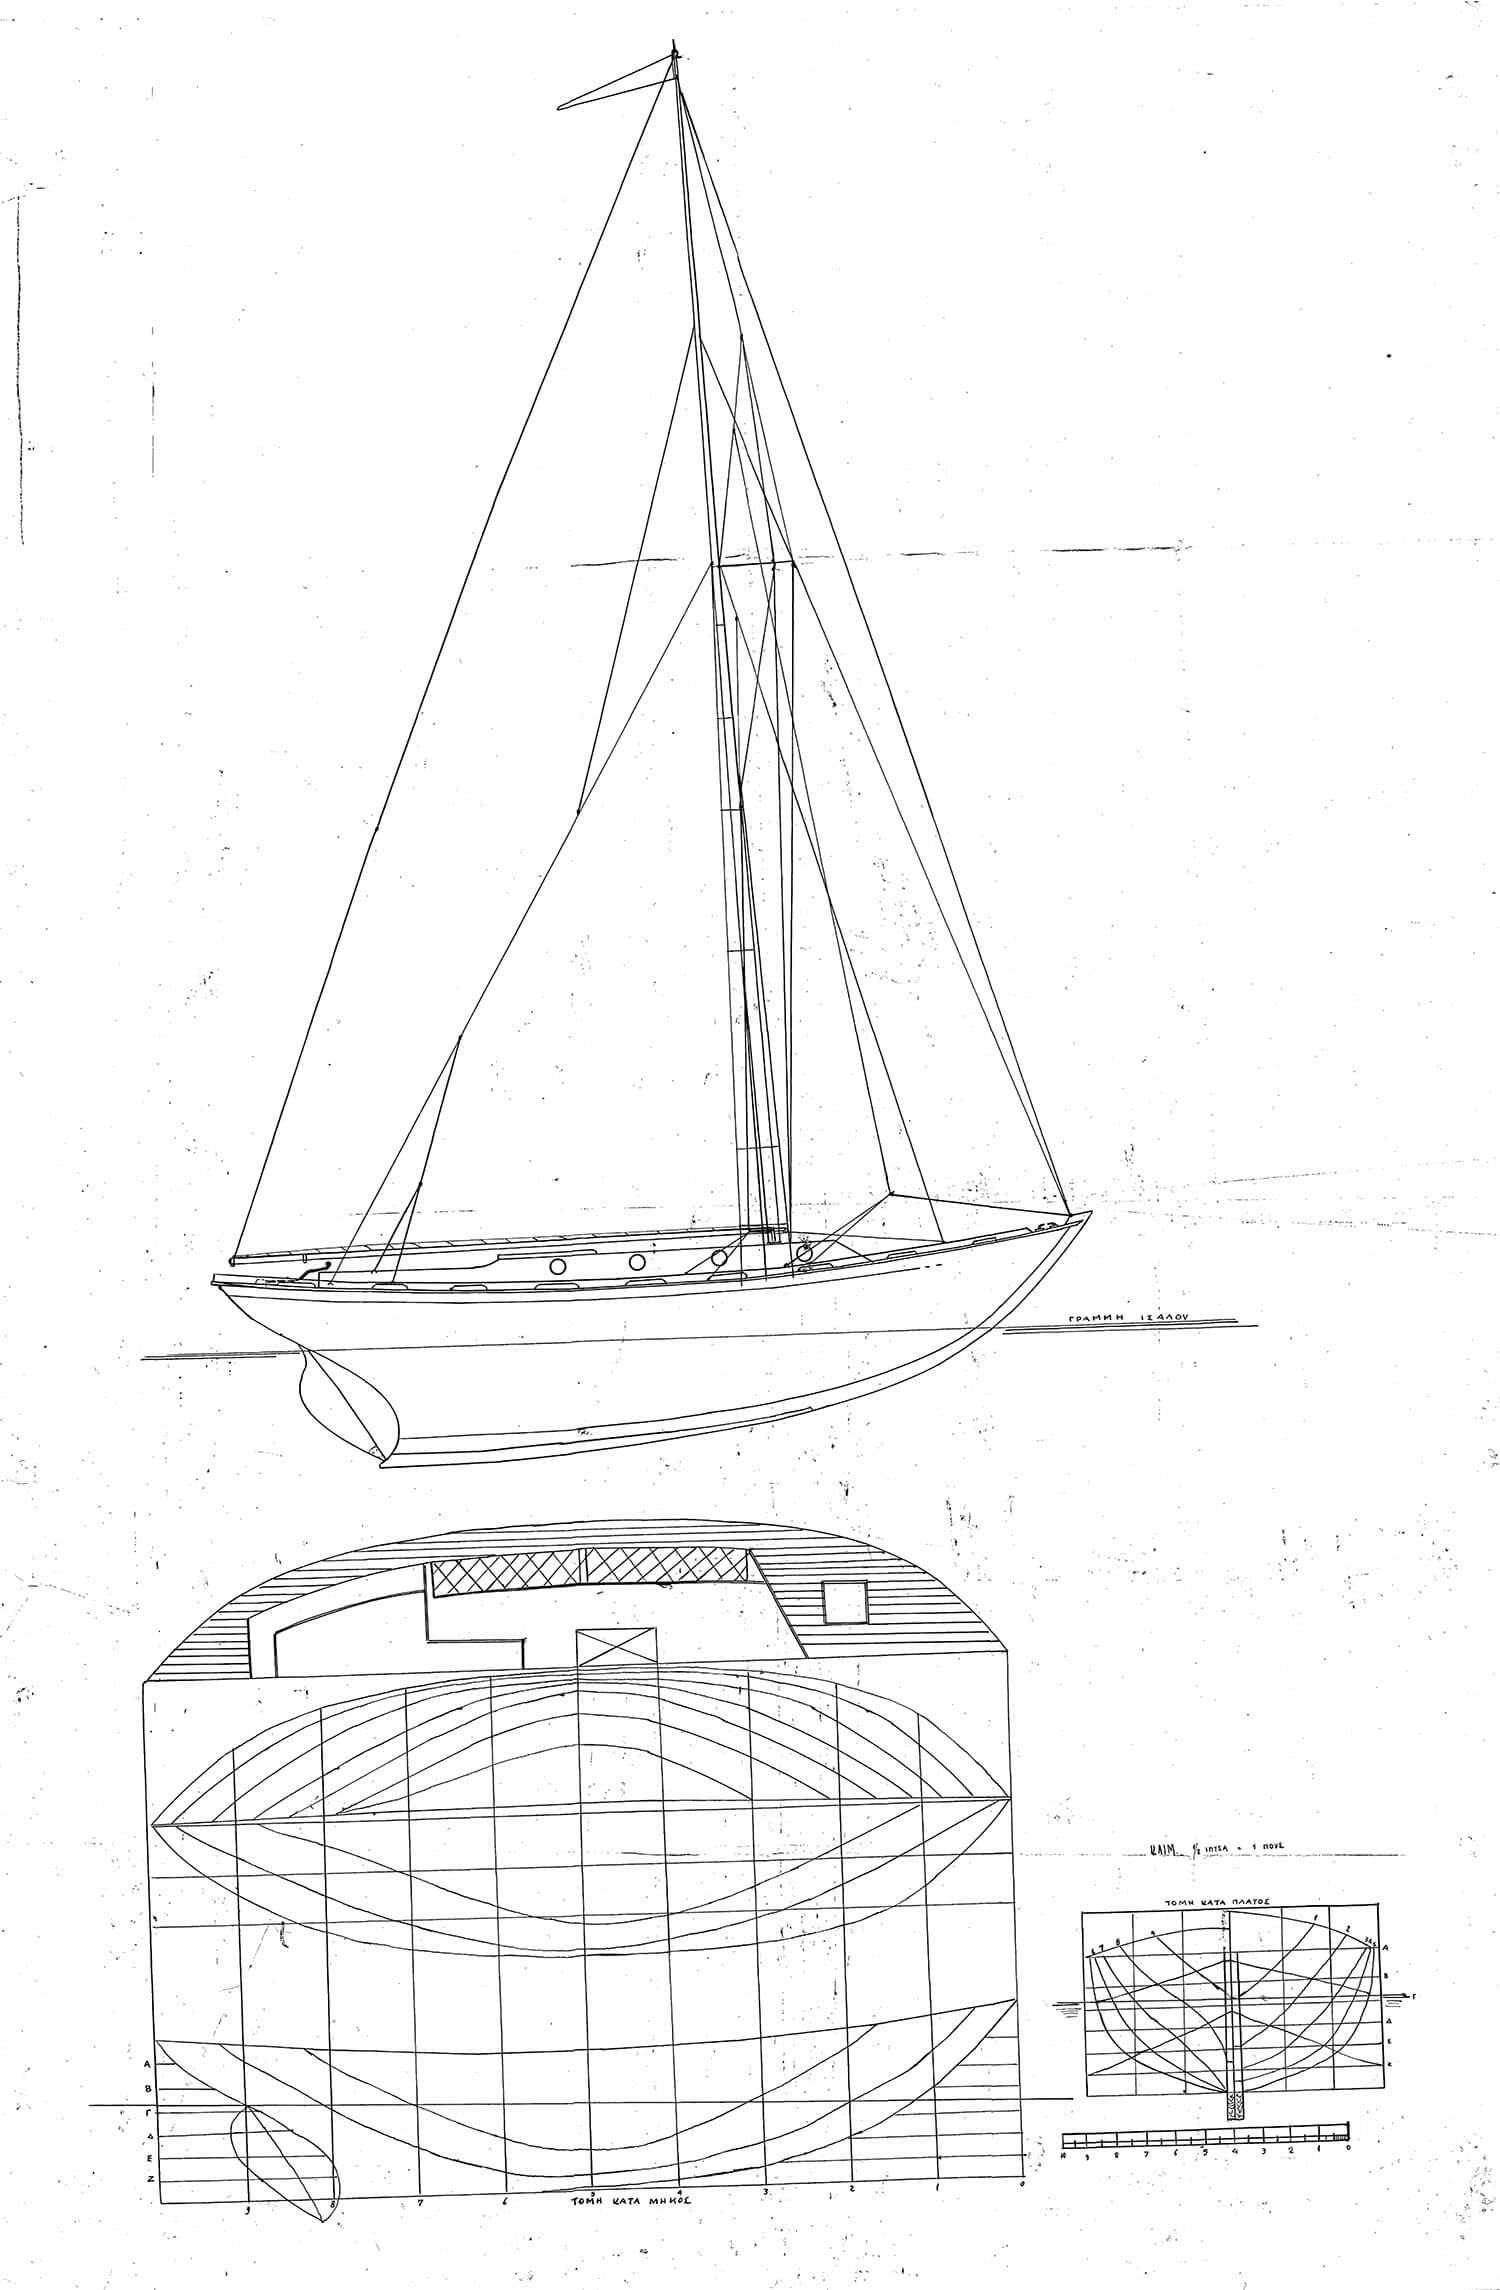 Drawing of a small wooden boat with sails of 1960.